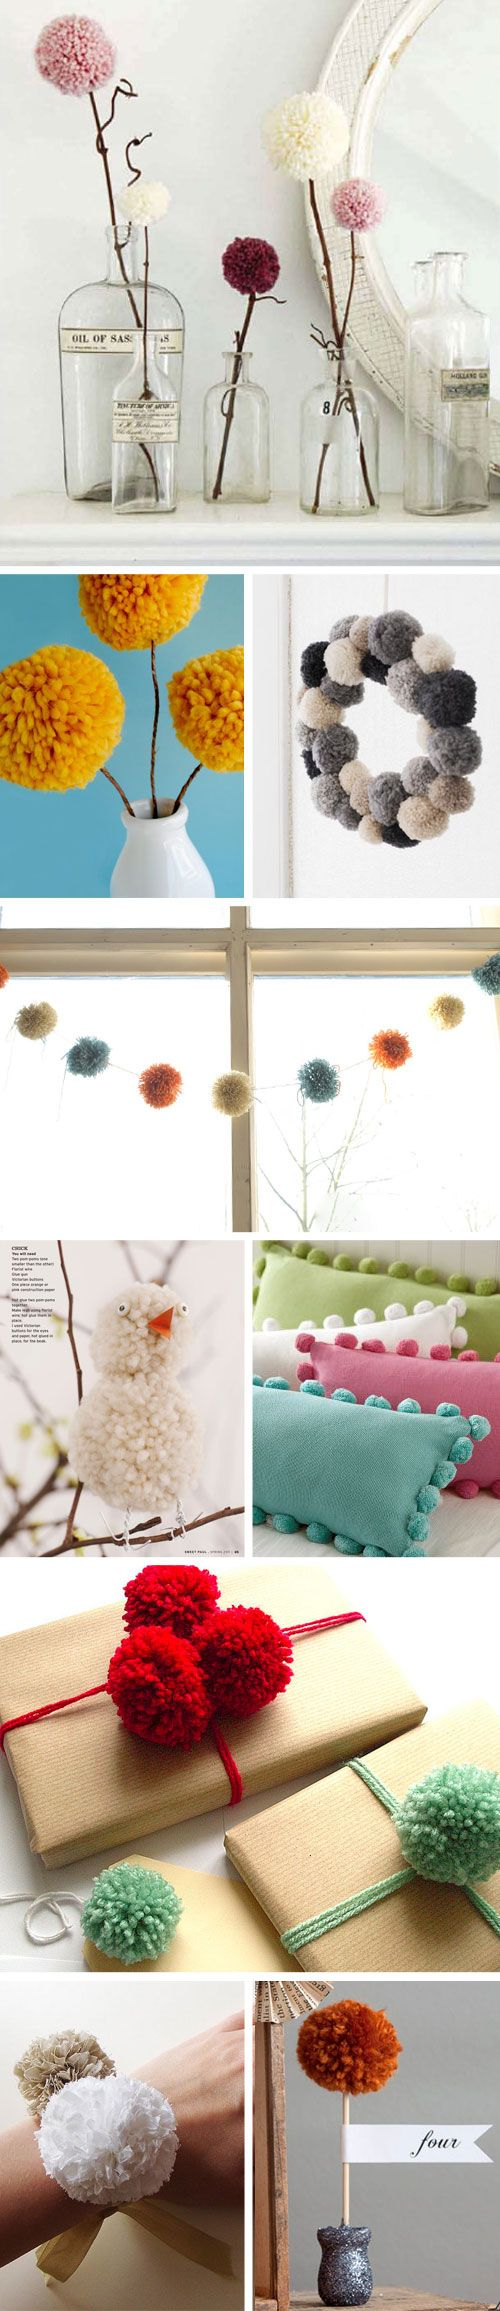 pom pom ideas. not a huge fan of most of the yarn poms but can probably use these ideas with paper ones.